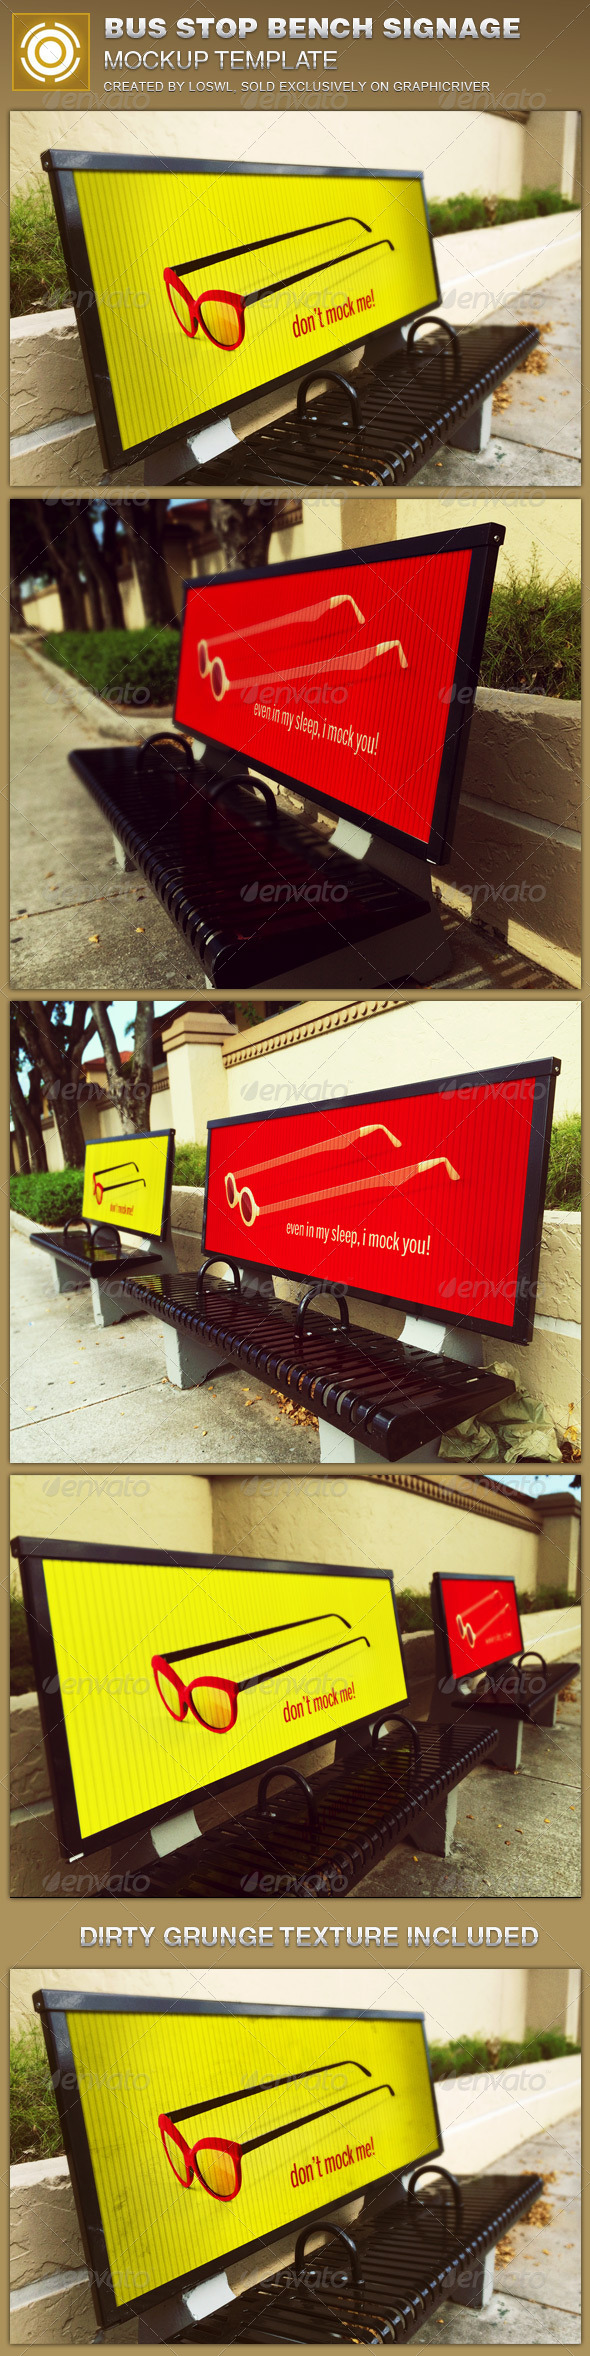 https://0.s3.envato.com/files/102525021/Corrugated-Bus-Stop-Bench-Signage-Mockup-Image-Preview.jpg